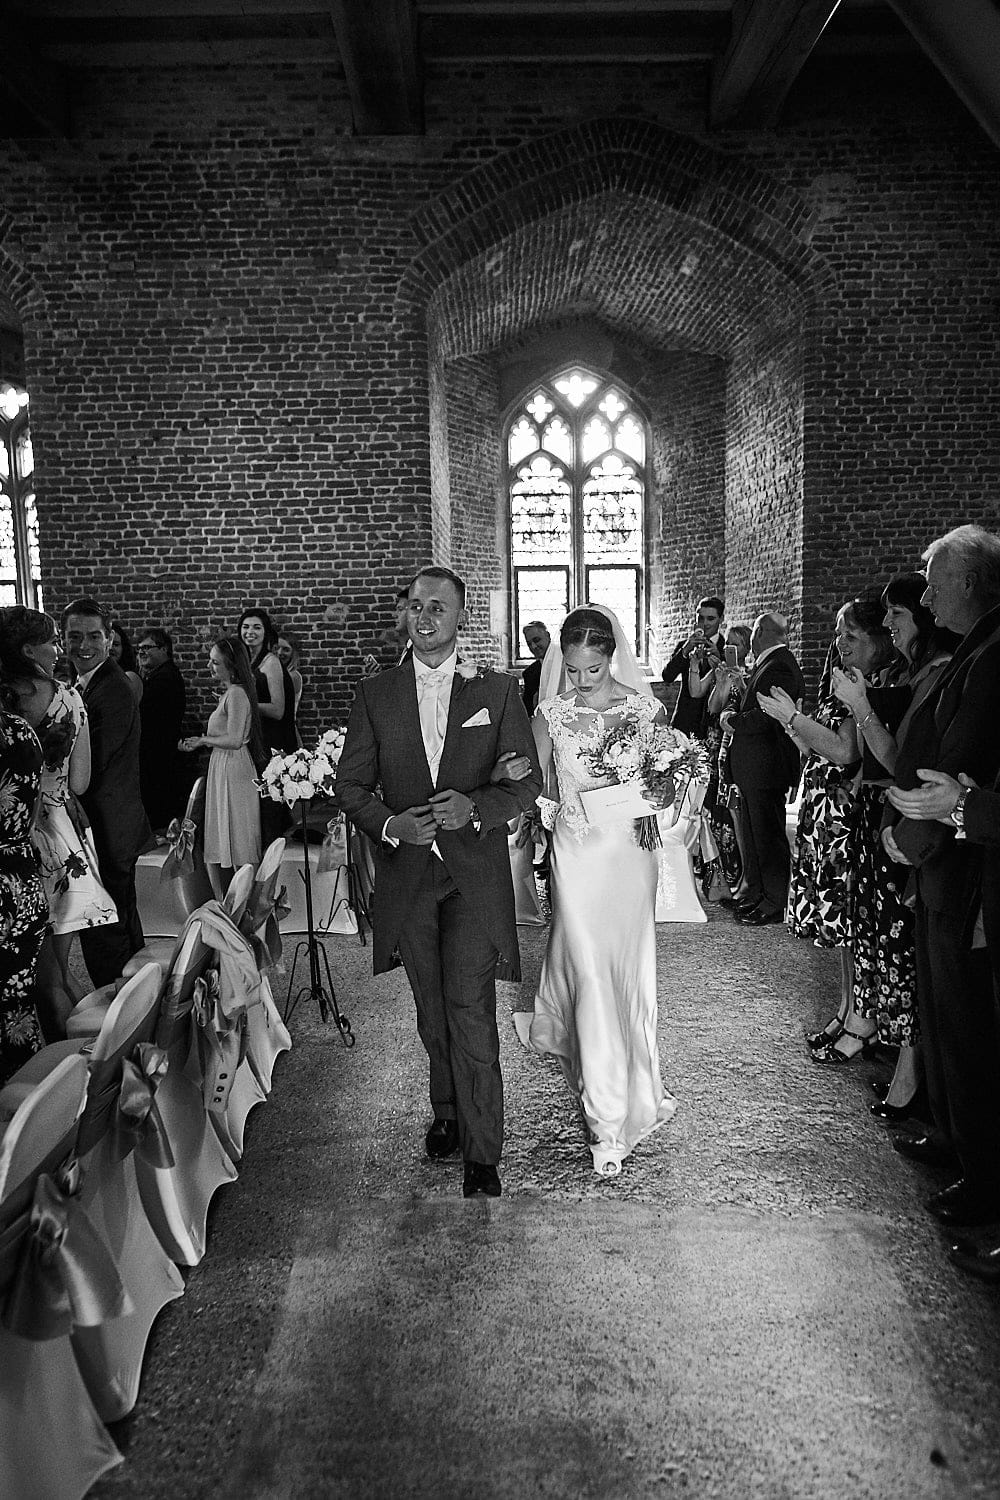 Couple recessional Tattershall Castle, with the couple leaving the parlour room